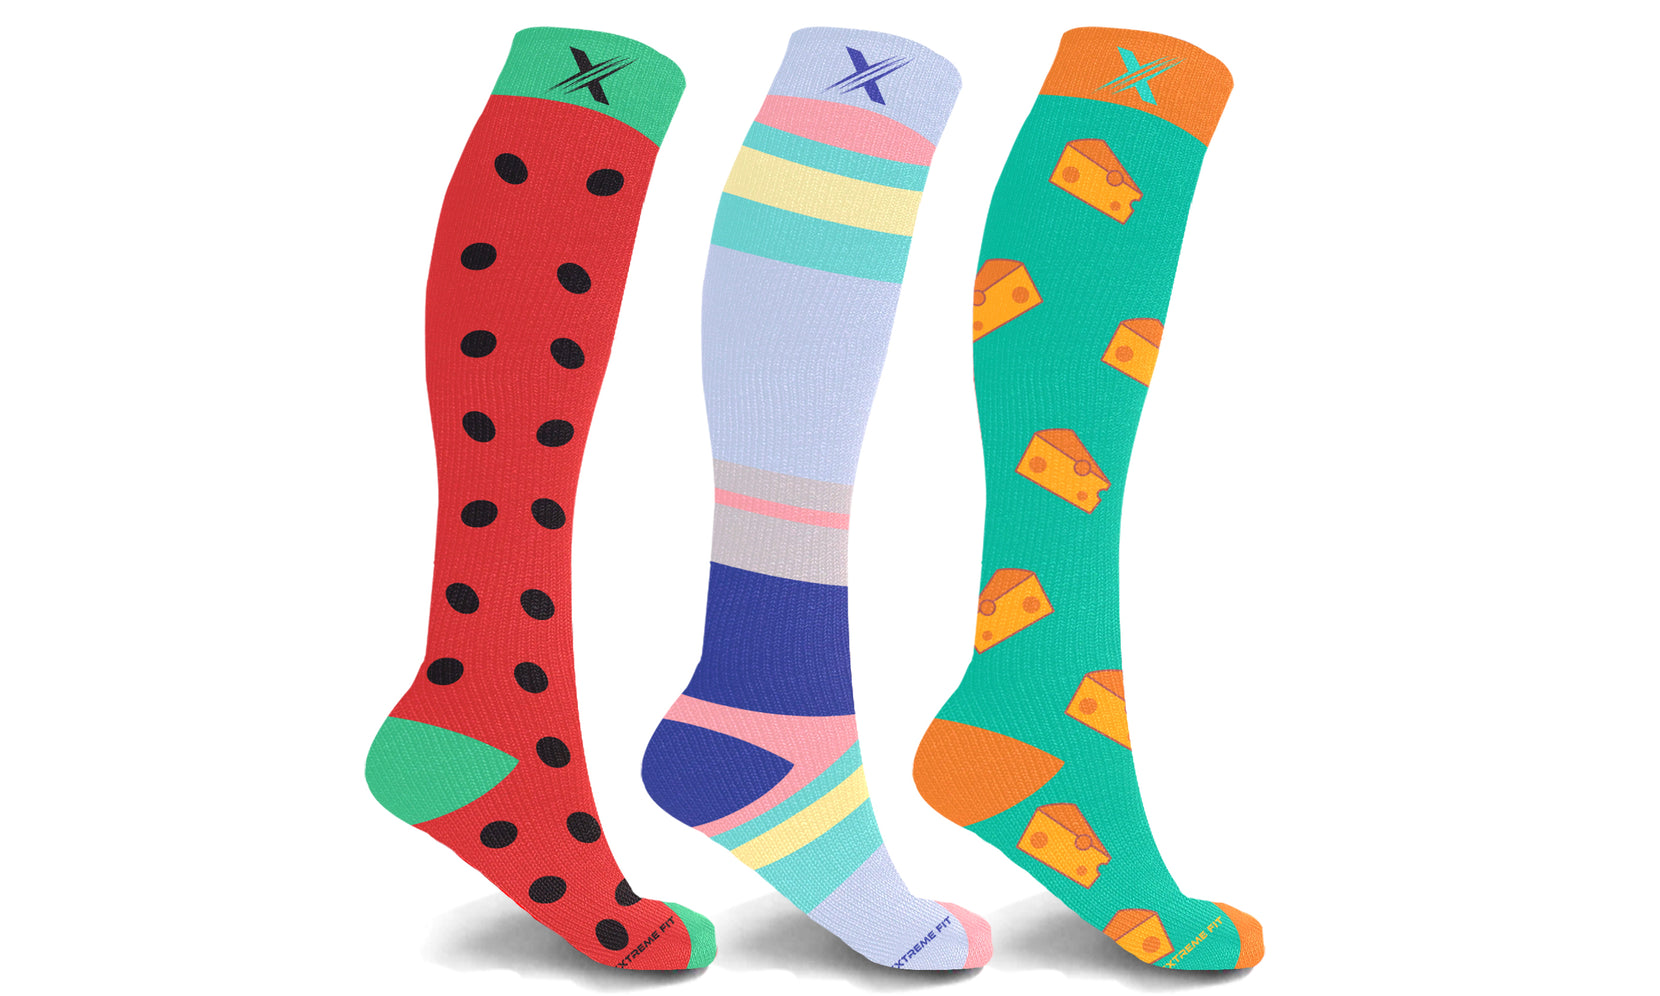 Unisex Fun and Expressive Compression Socks (3-Pairs)